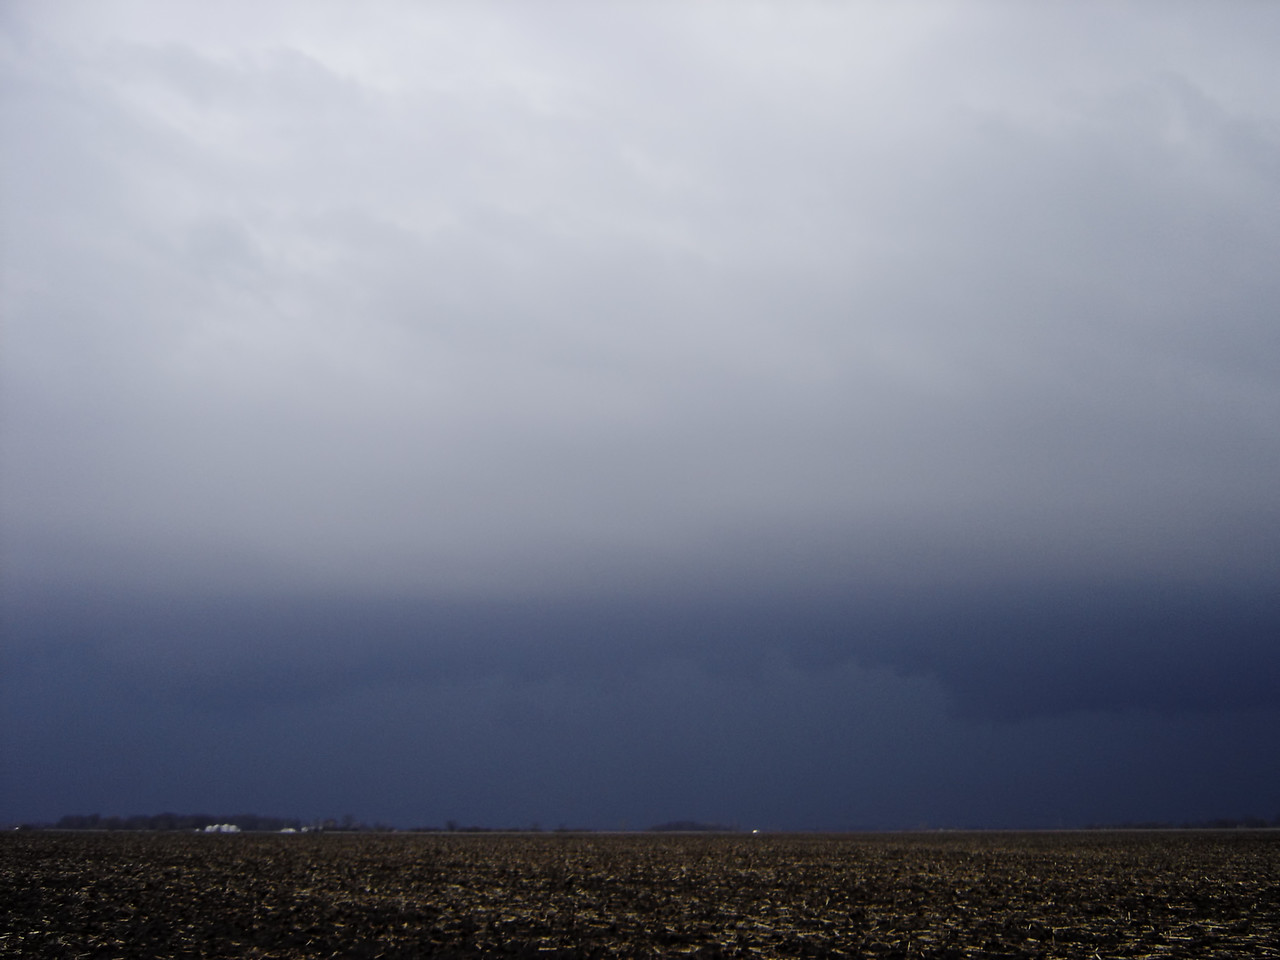 "April 2 - W Macon County IL. Tornado warned storm as part of a historic outbreak this day.<br /> <br /> Related link <a href=""http://www.crh.noaa.gov/ilx/?n=02apr2006"">http://www.crh.noaa.gov/ilx/?n=02apr2006</a>"